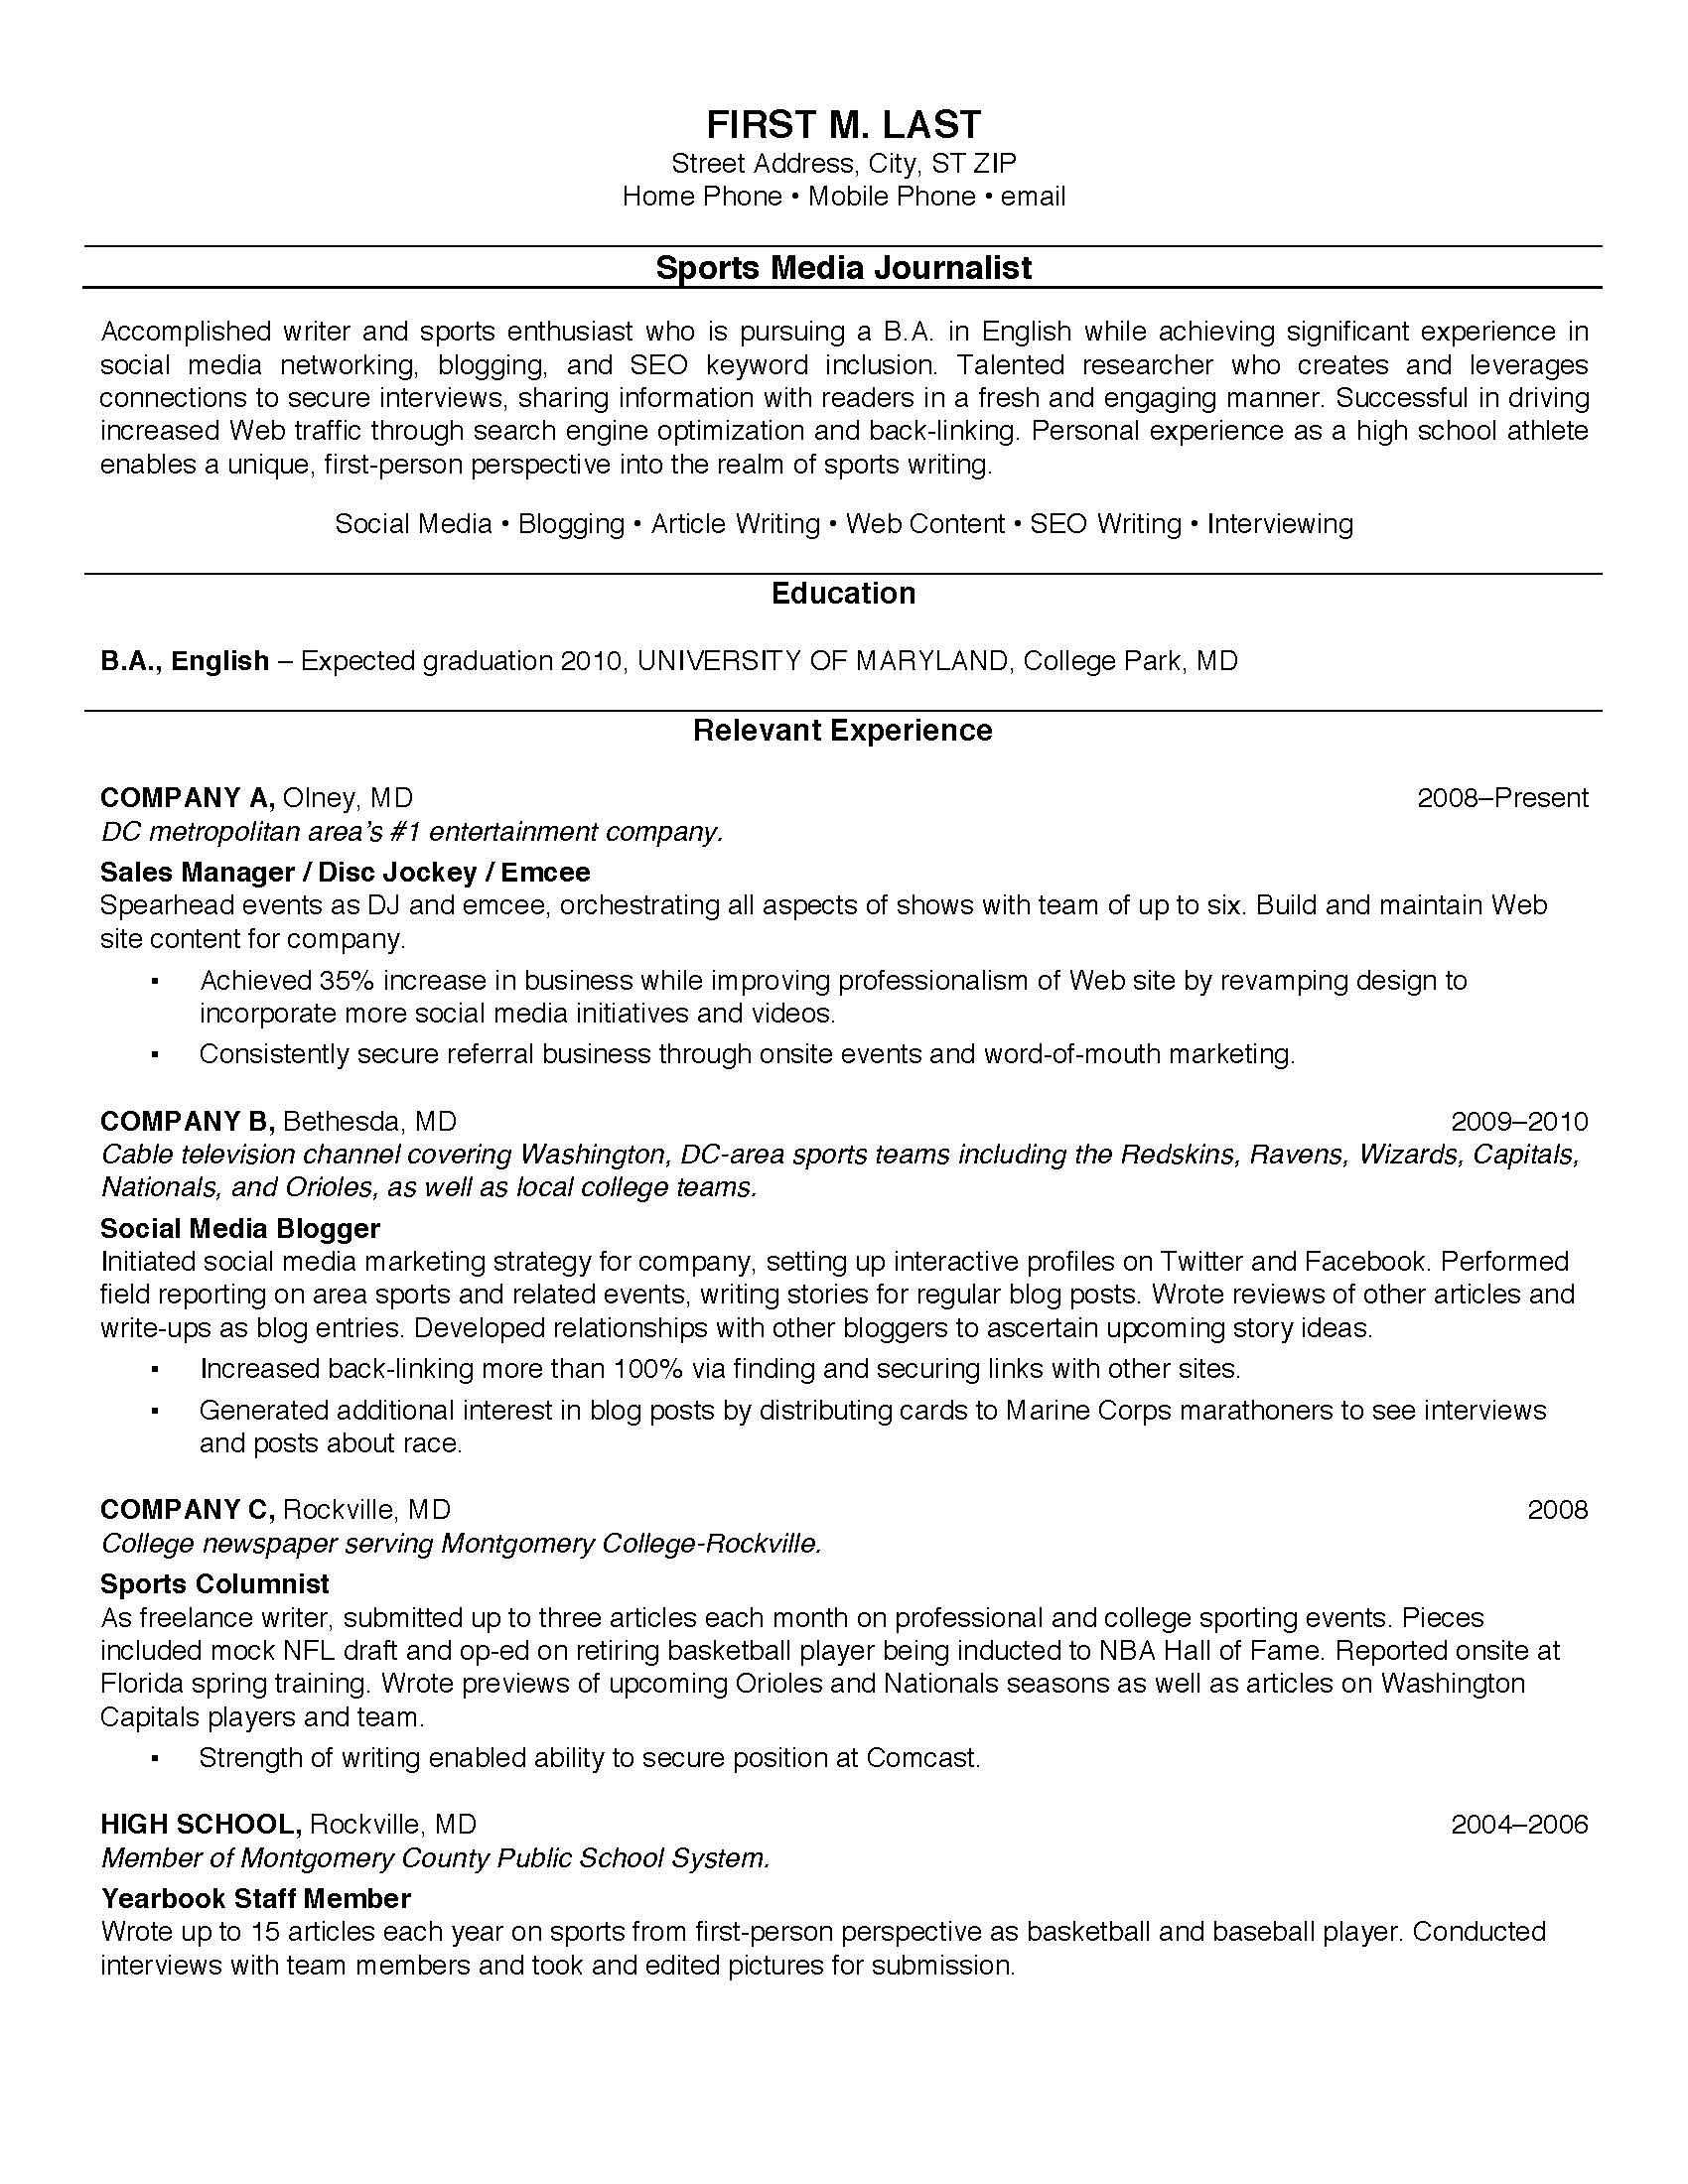 Professional Resume Examples For College Students Intended For College Student Resume Template Microsoft Word